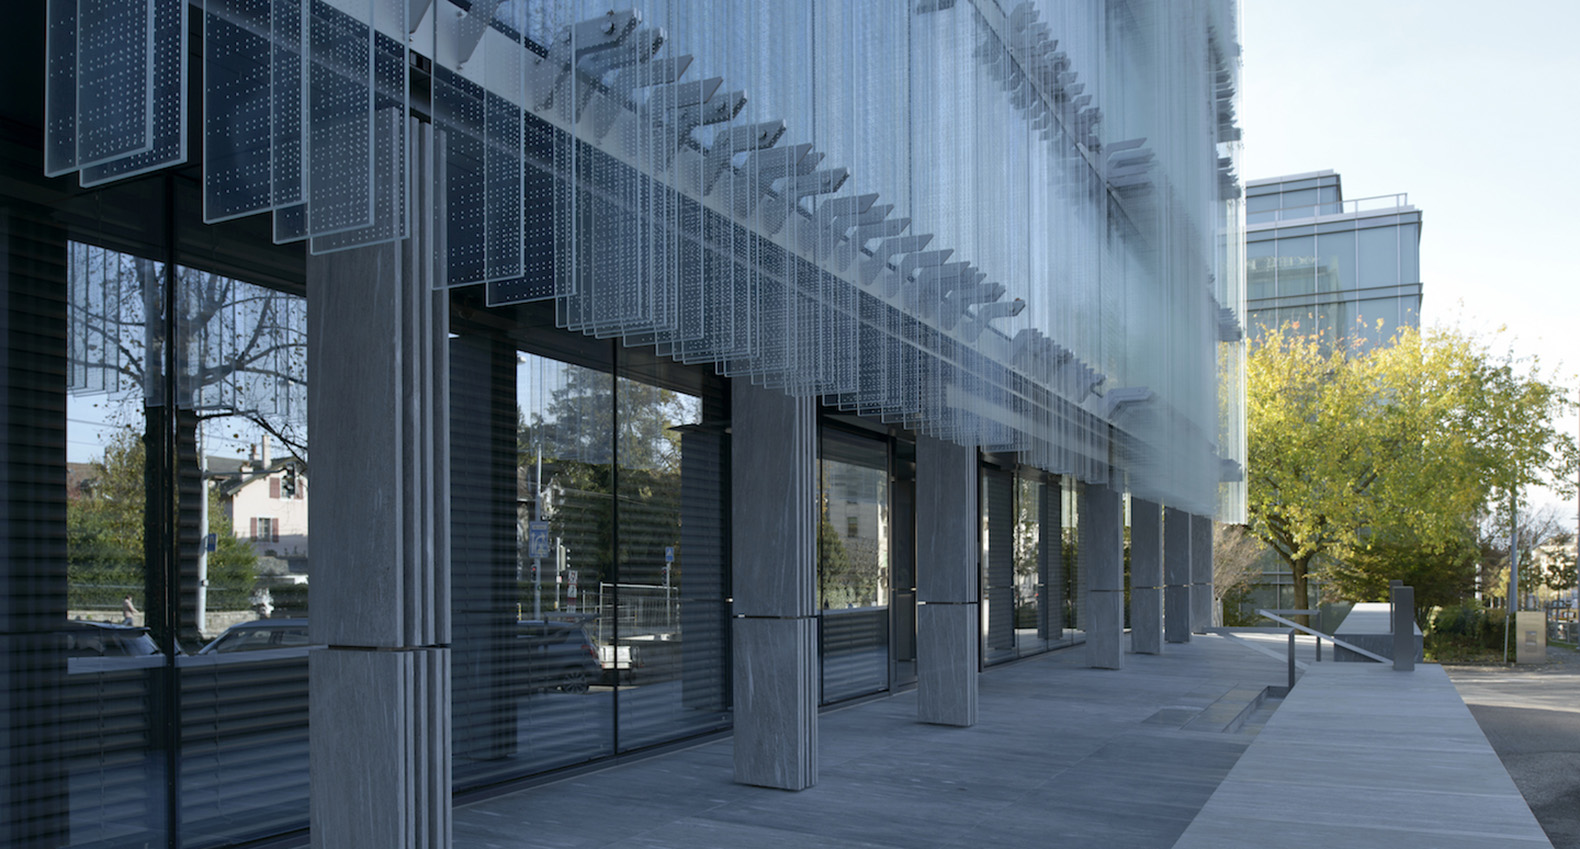 Naturally Ventilated Glass Building Looks Like A